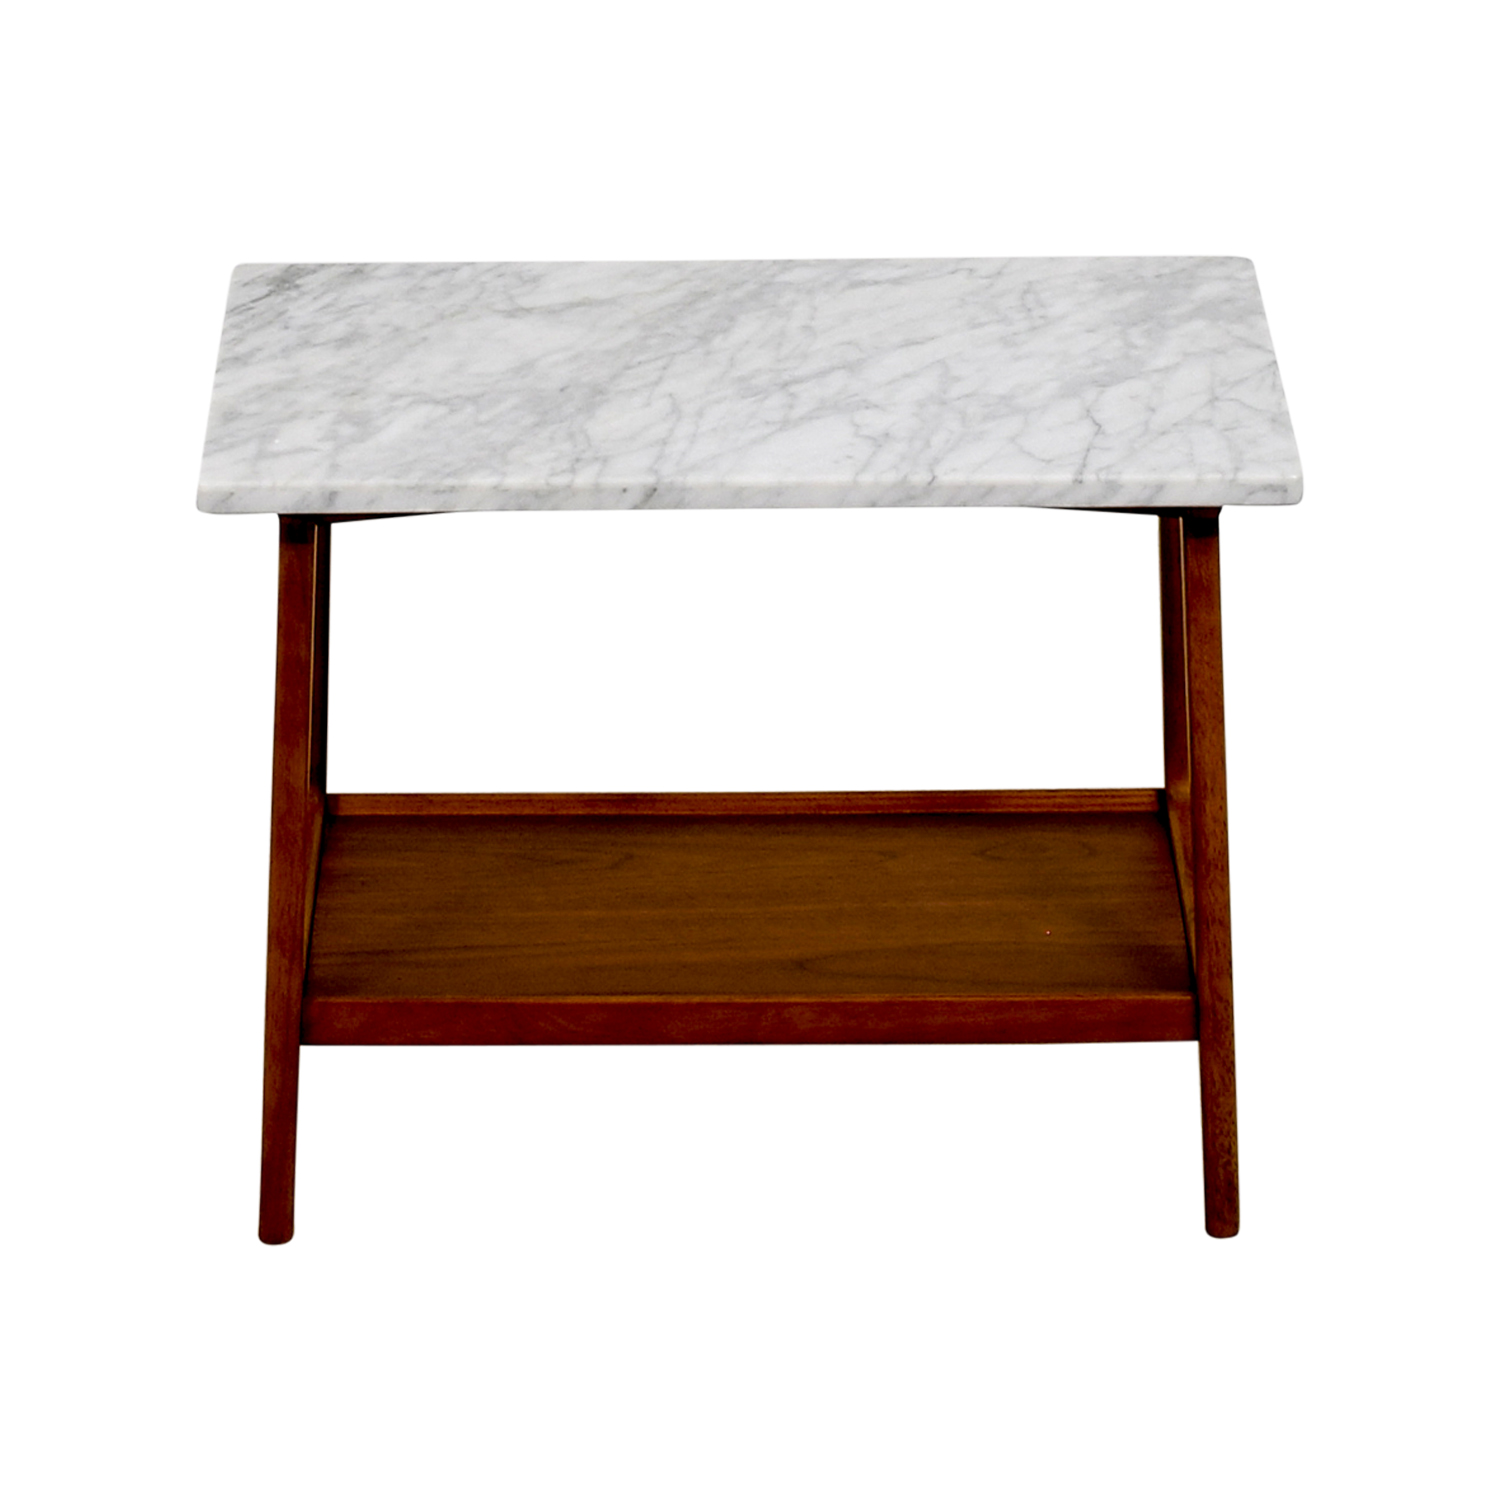 West Elm West Elm Reeve Marble & Walnut Side Table price